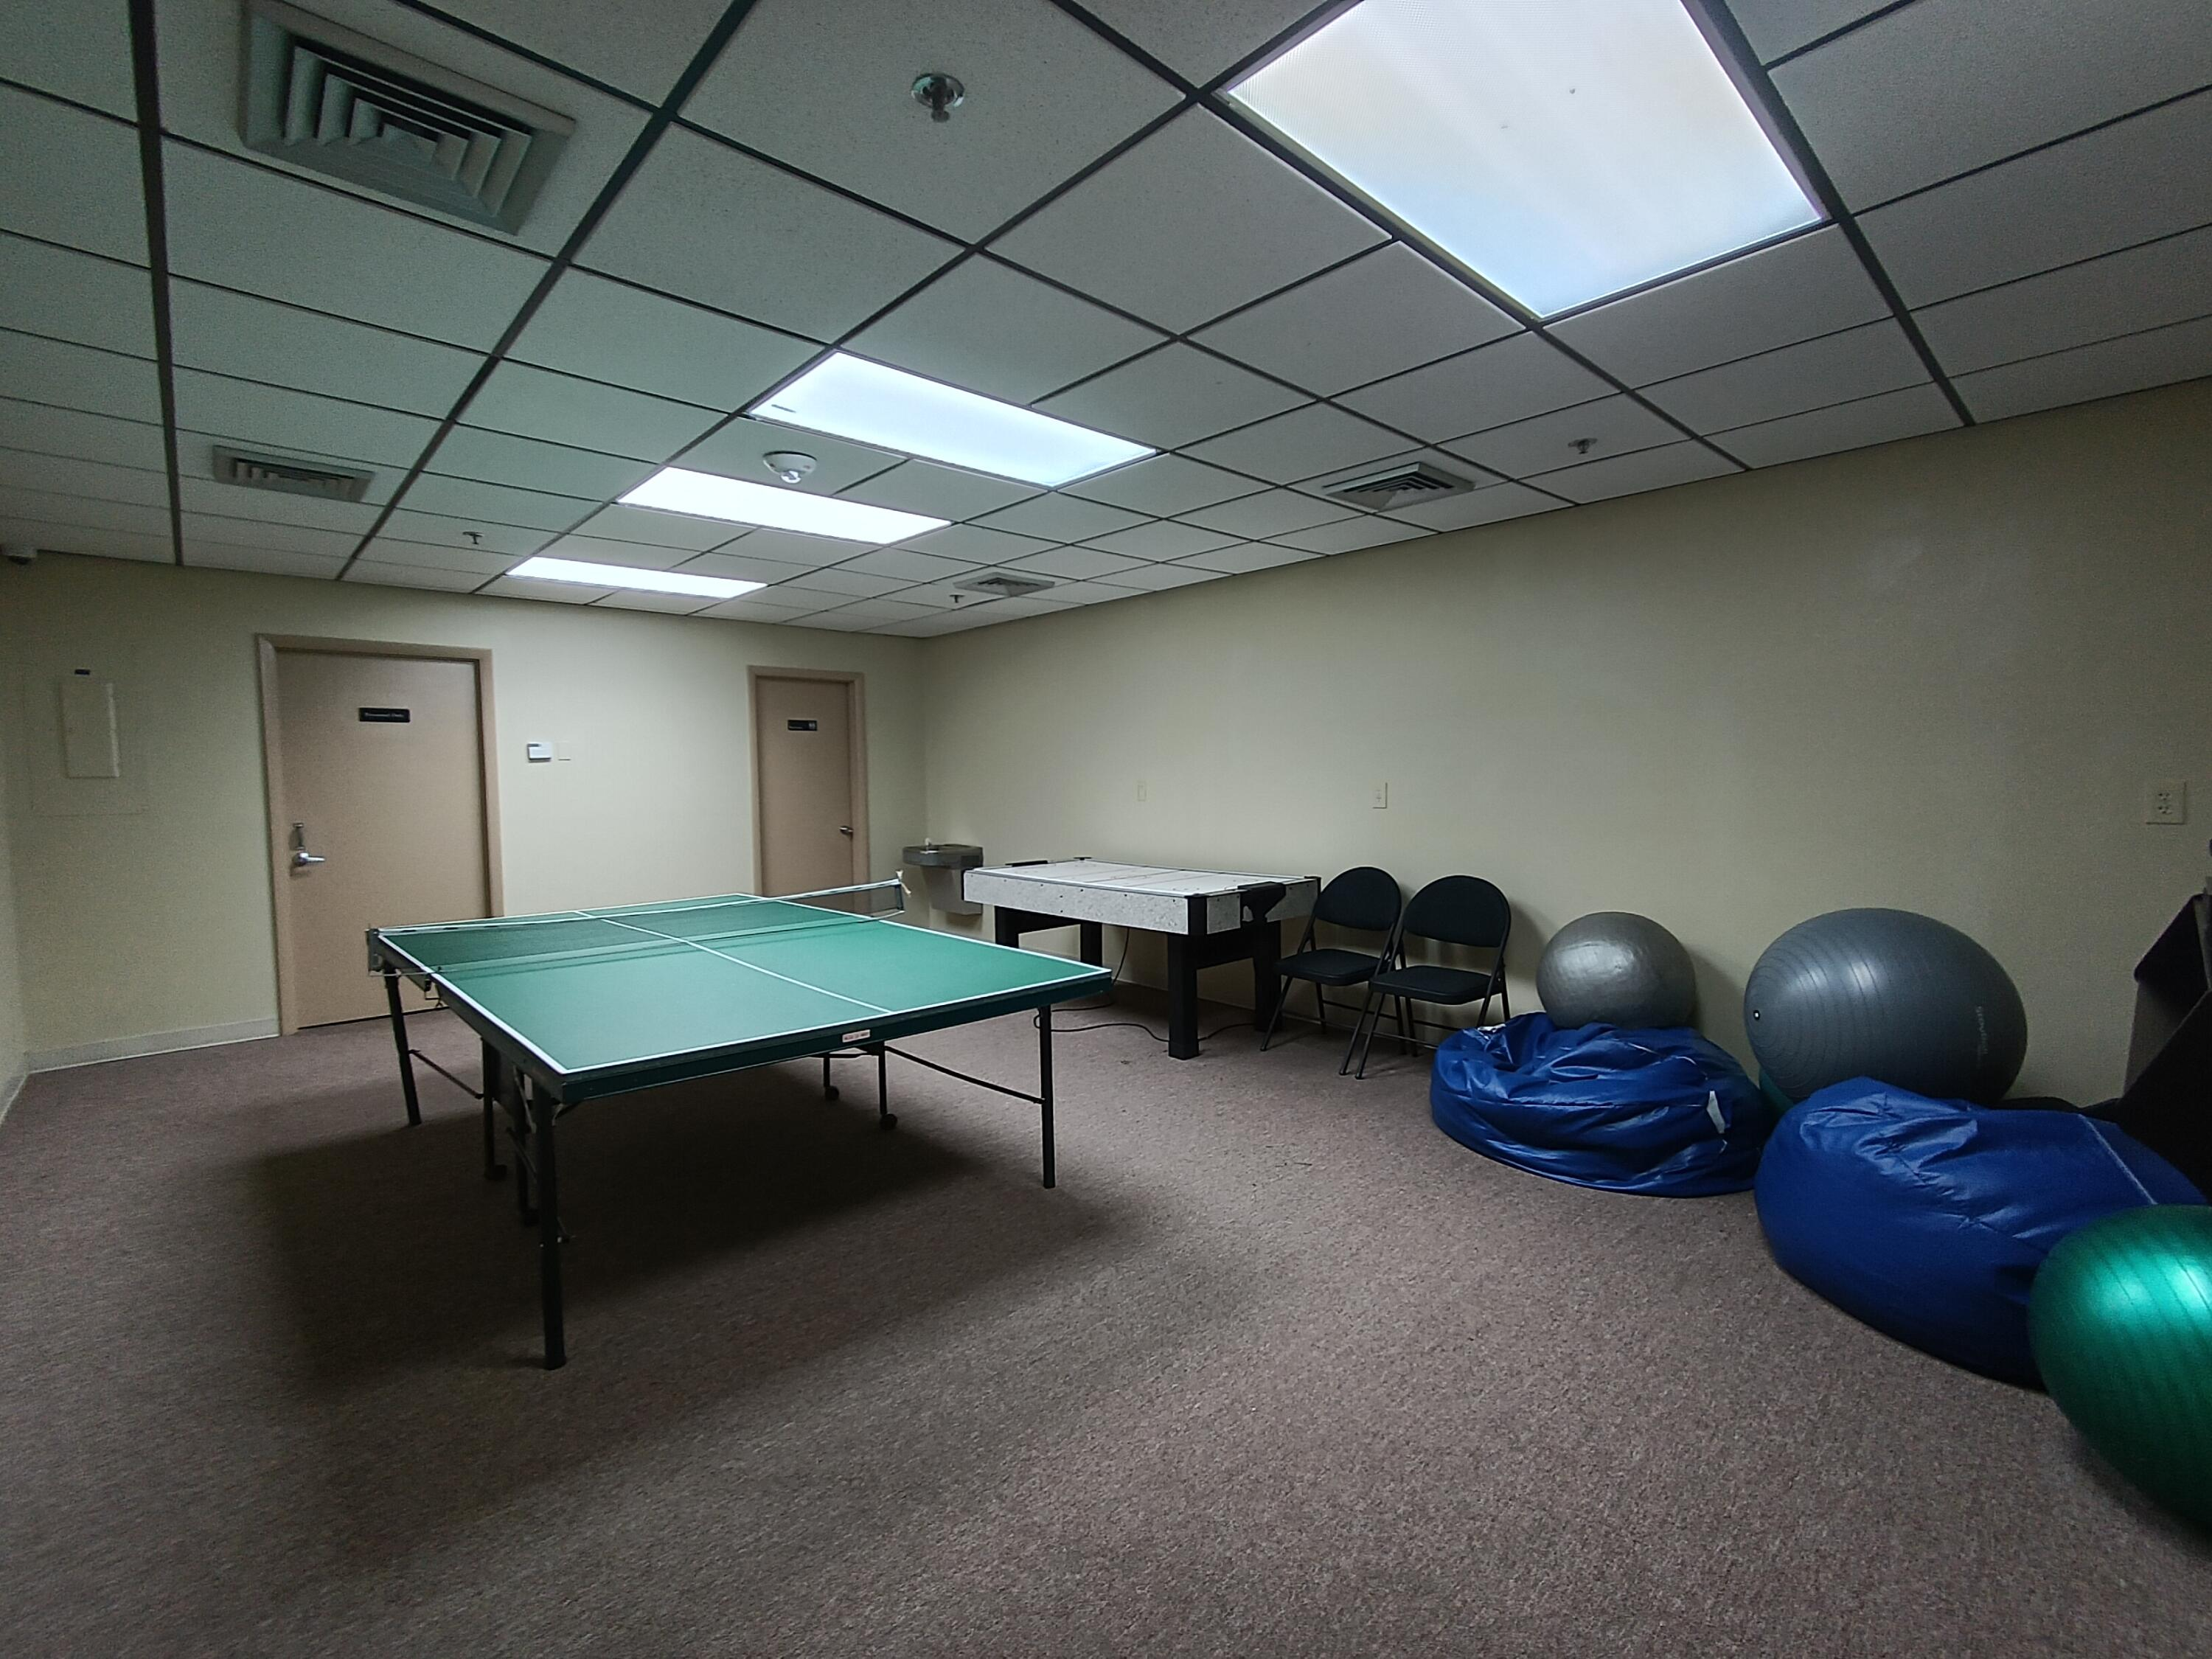 Ping-pong room